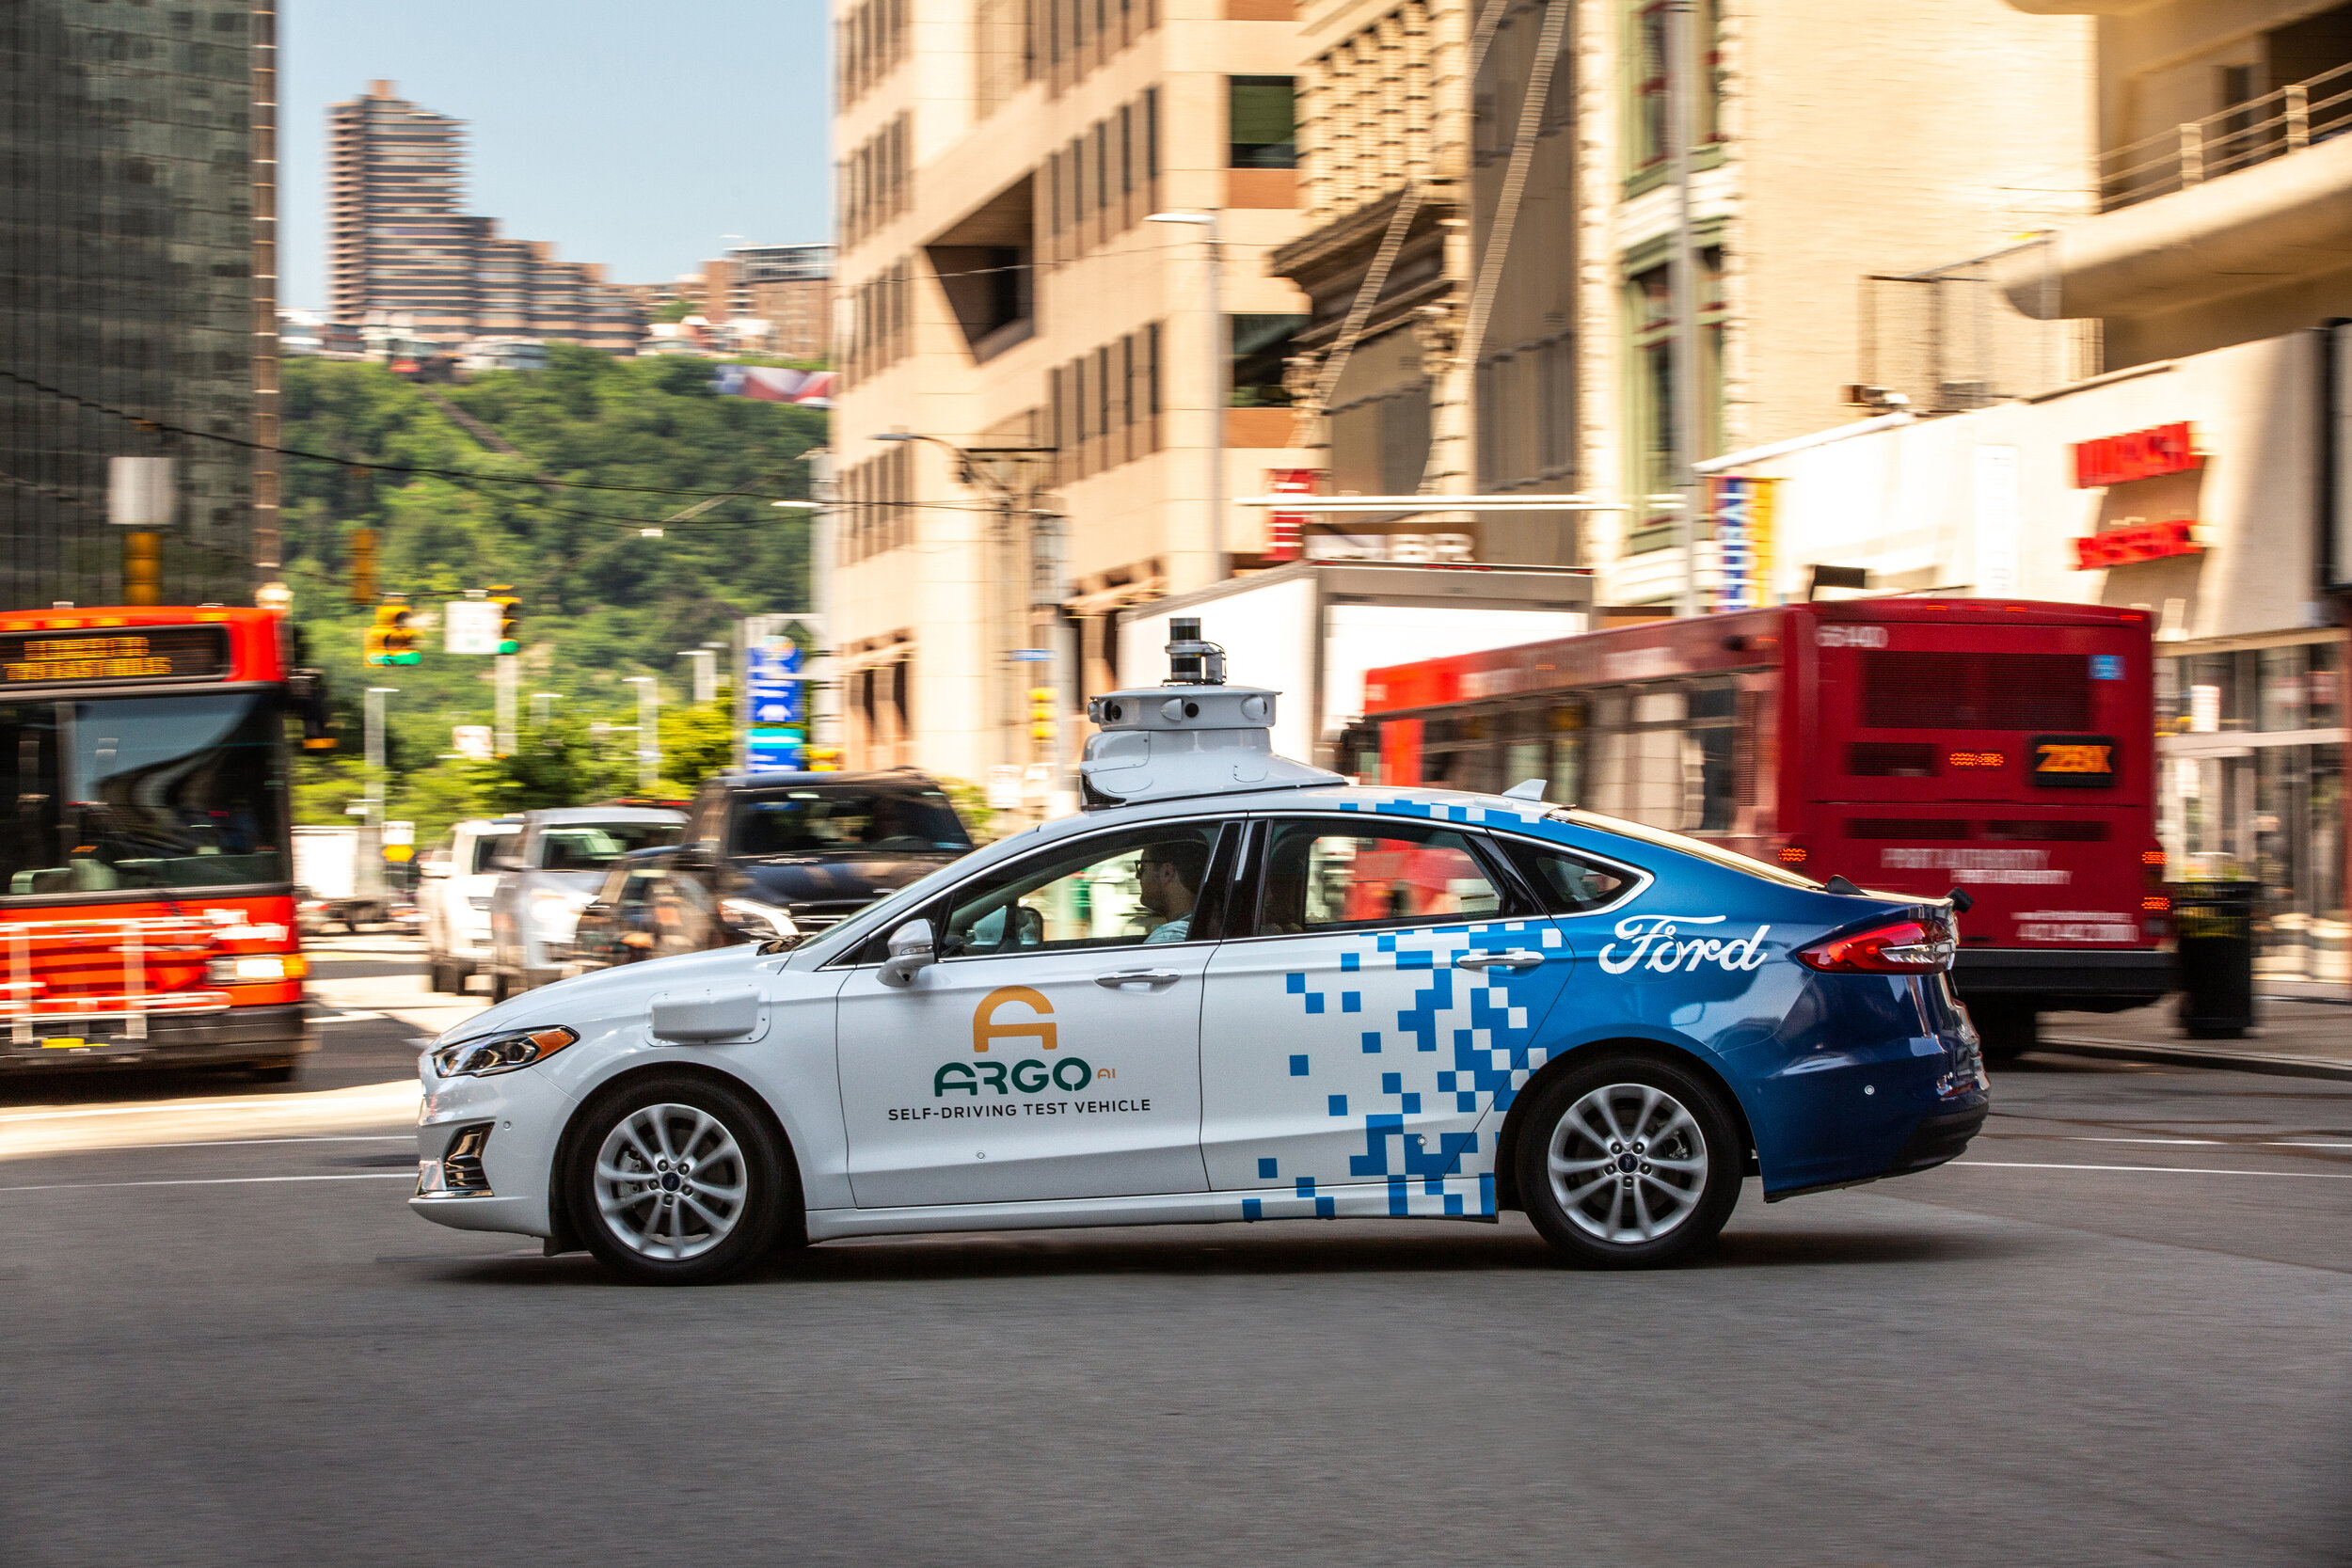 Pittsburgh is home to the world's first self-driving cars. It now has six companies with autonomous vehicles on the roads. -